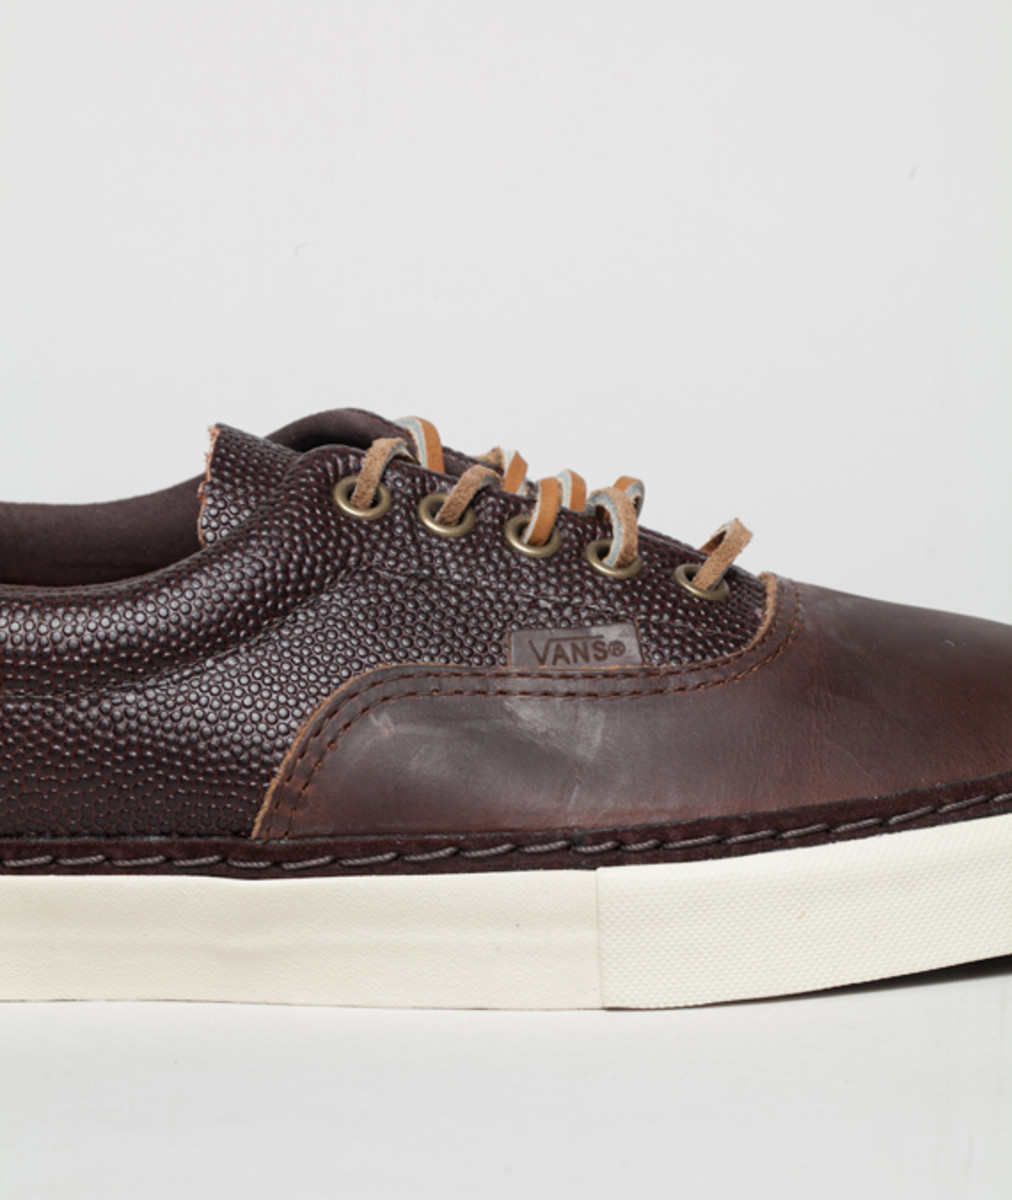 horween-leather-vans-era-hw-lx-06